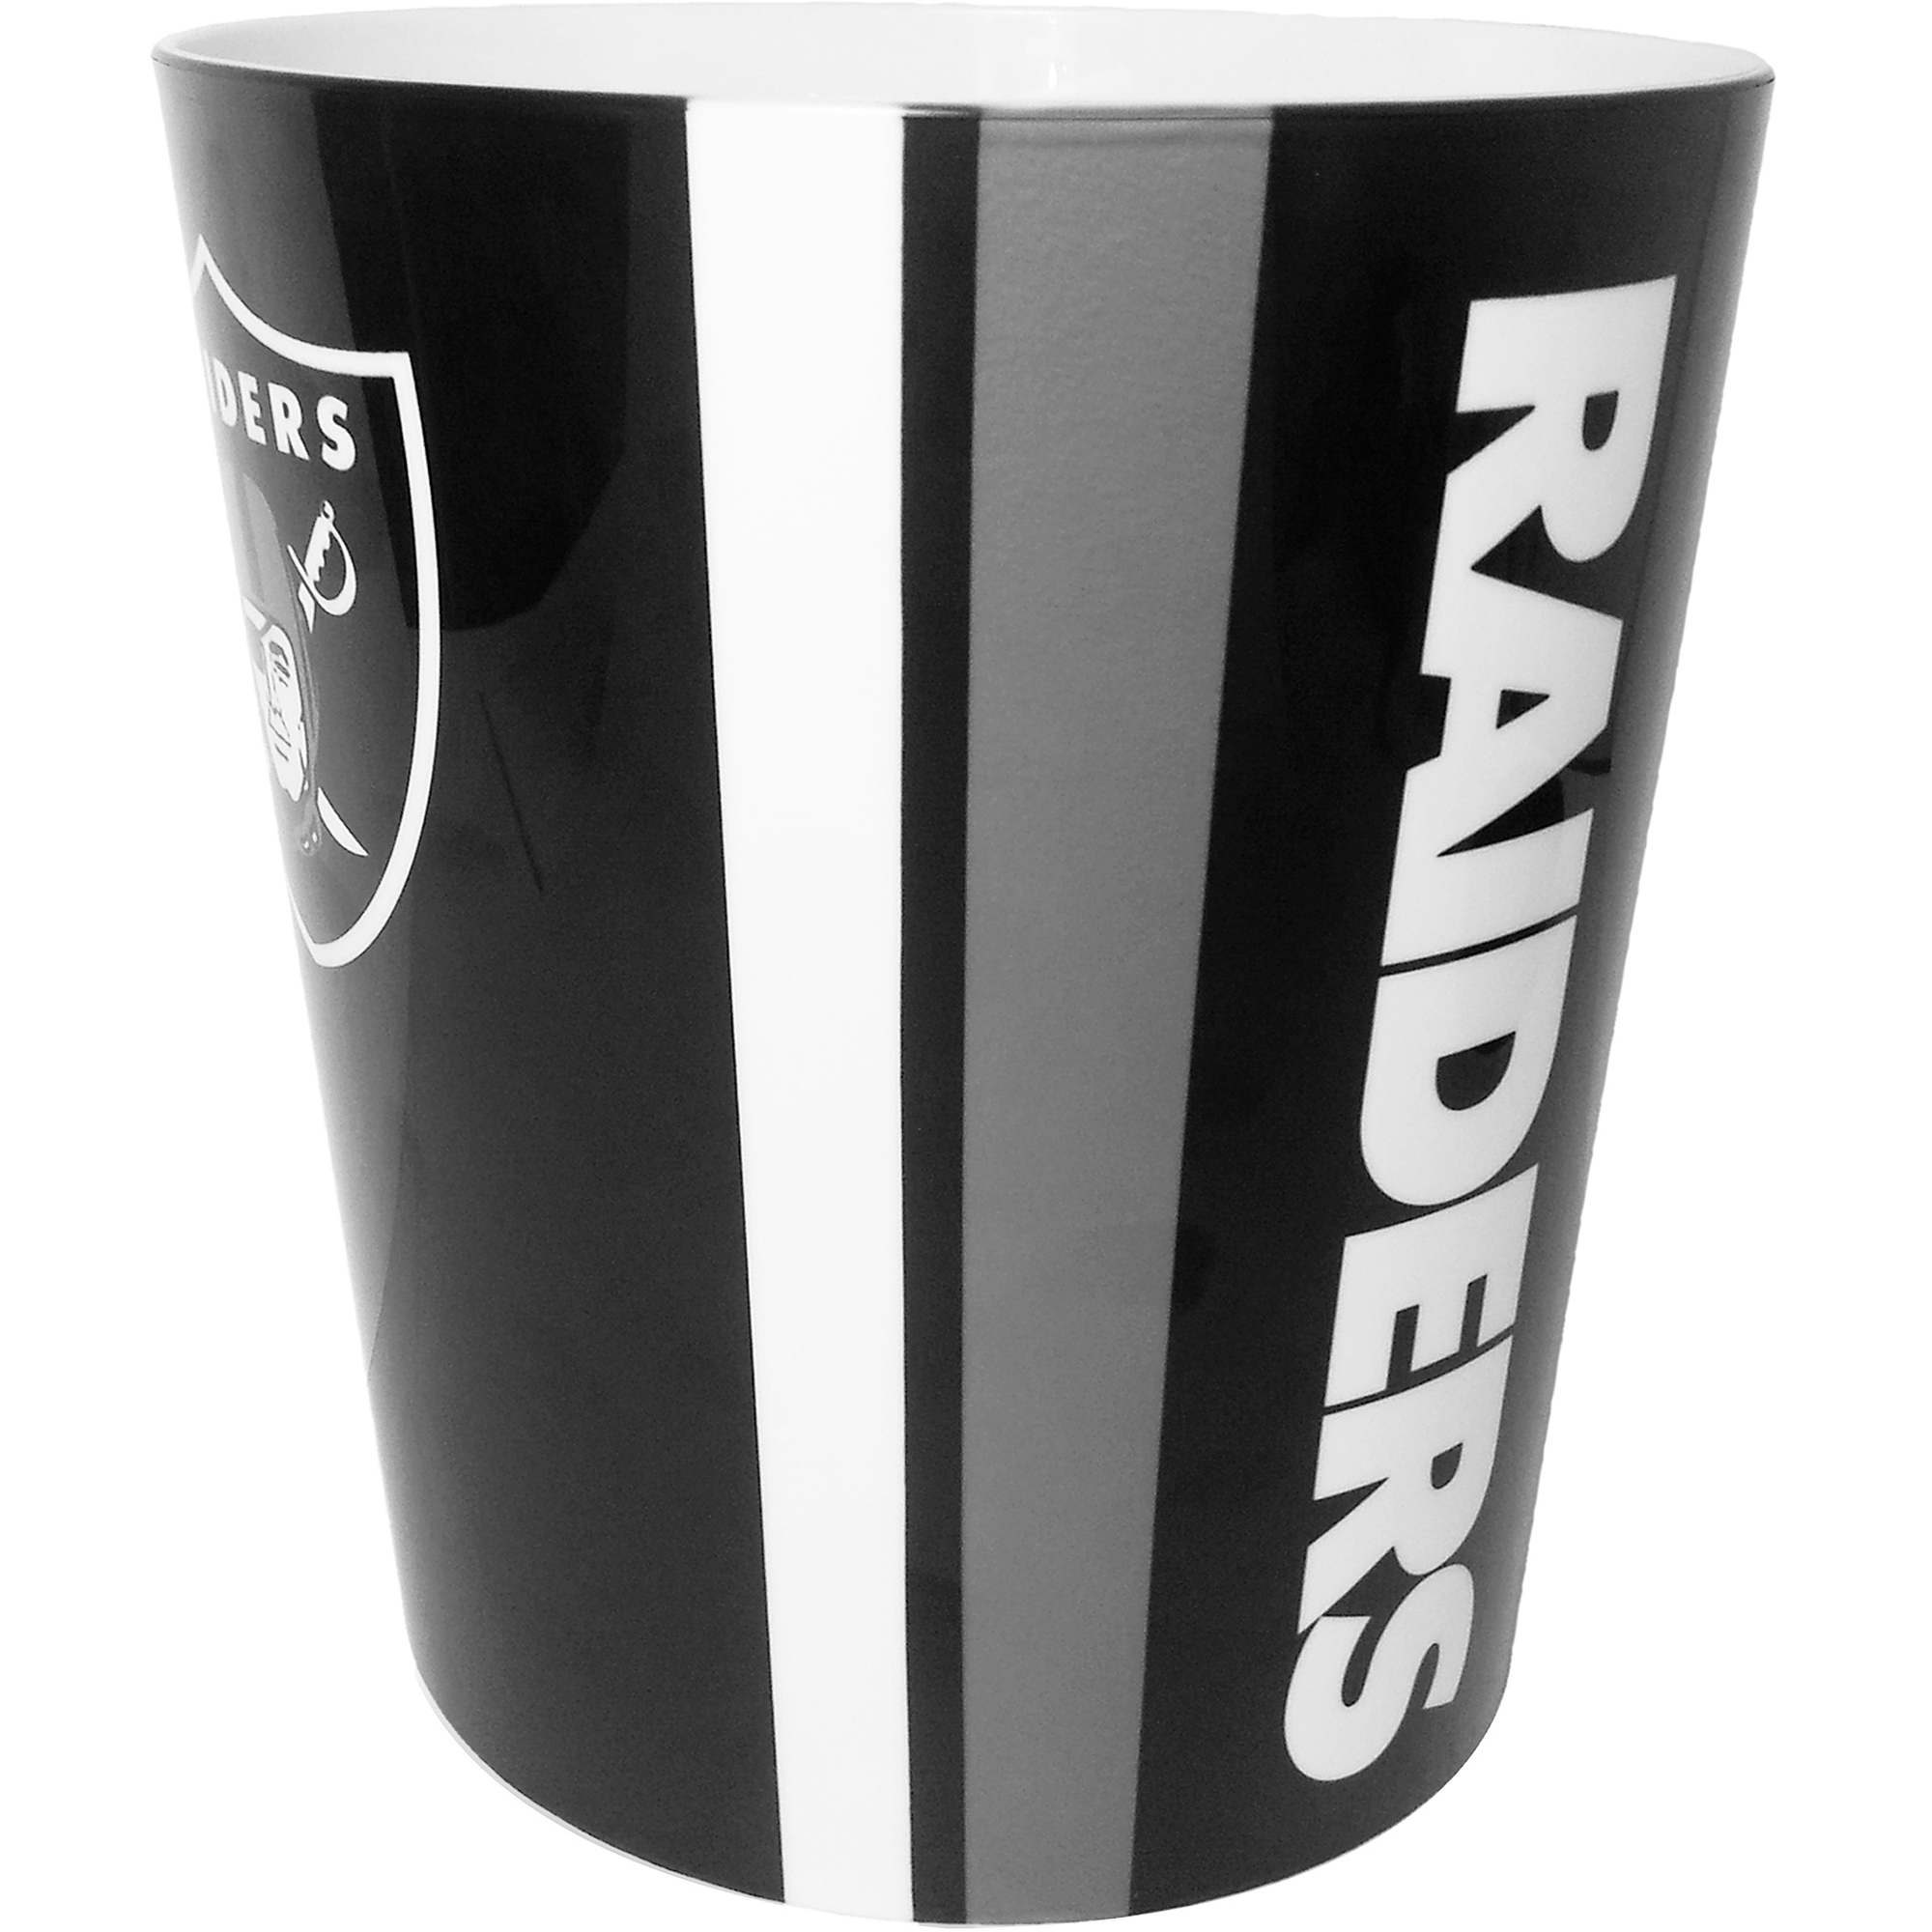 NFL Oakland Raiders Decorative Bath Collection - Wastecan